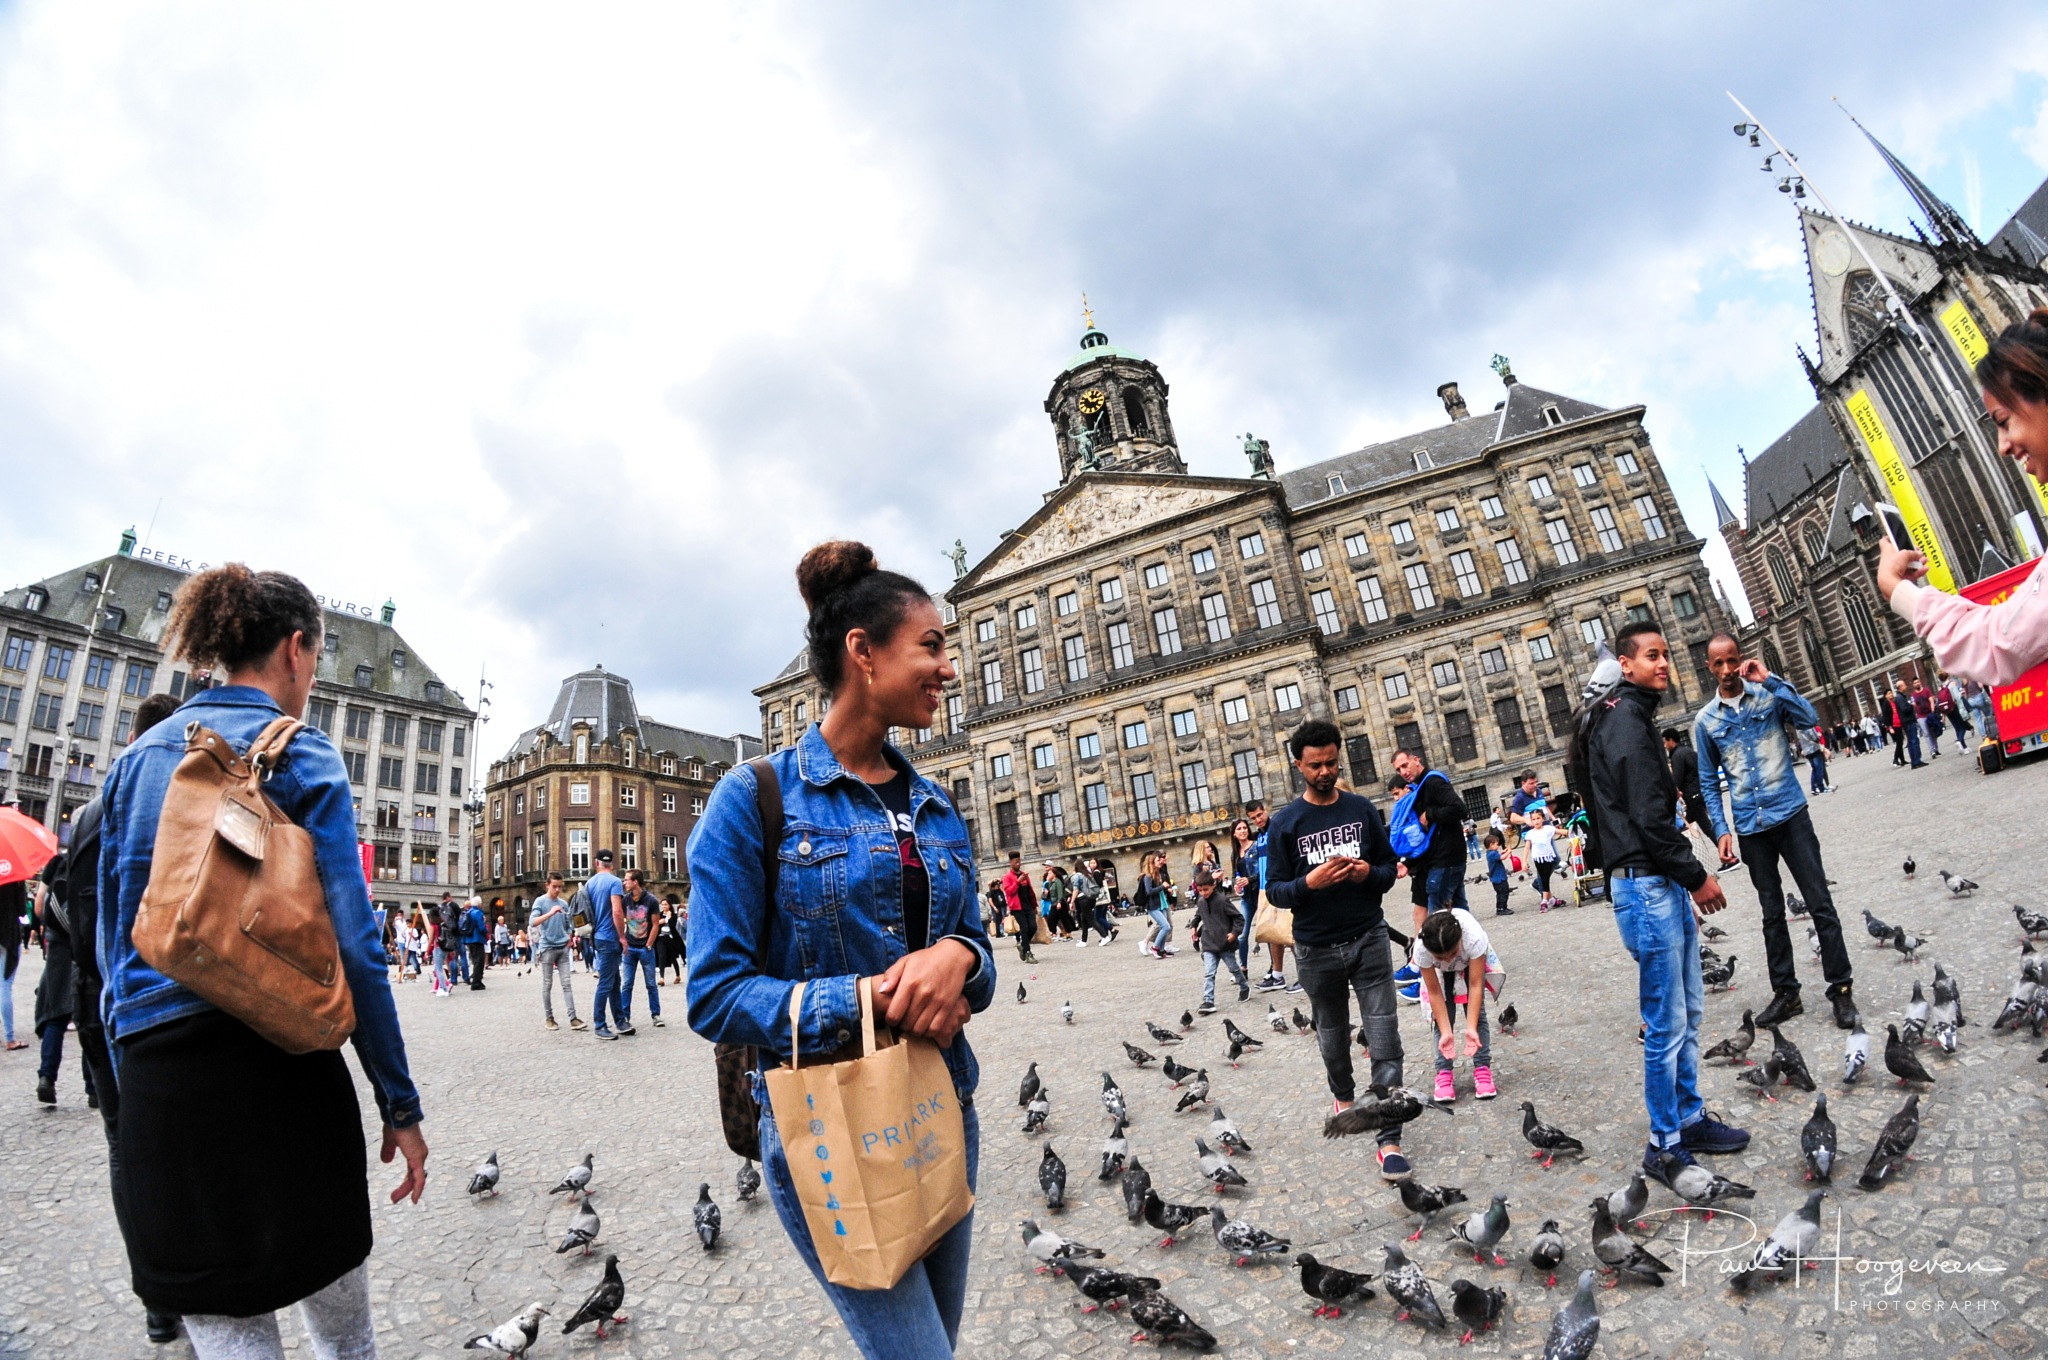 Pigeons @ Dam square (Amsterdam) by Paul Hoogeveen Photography